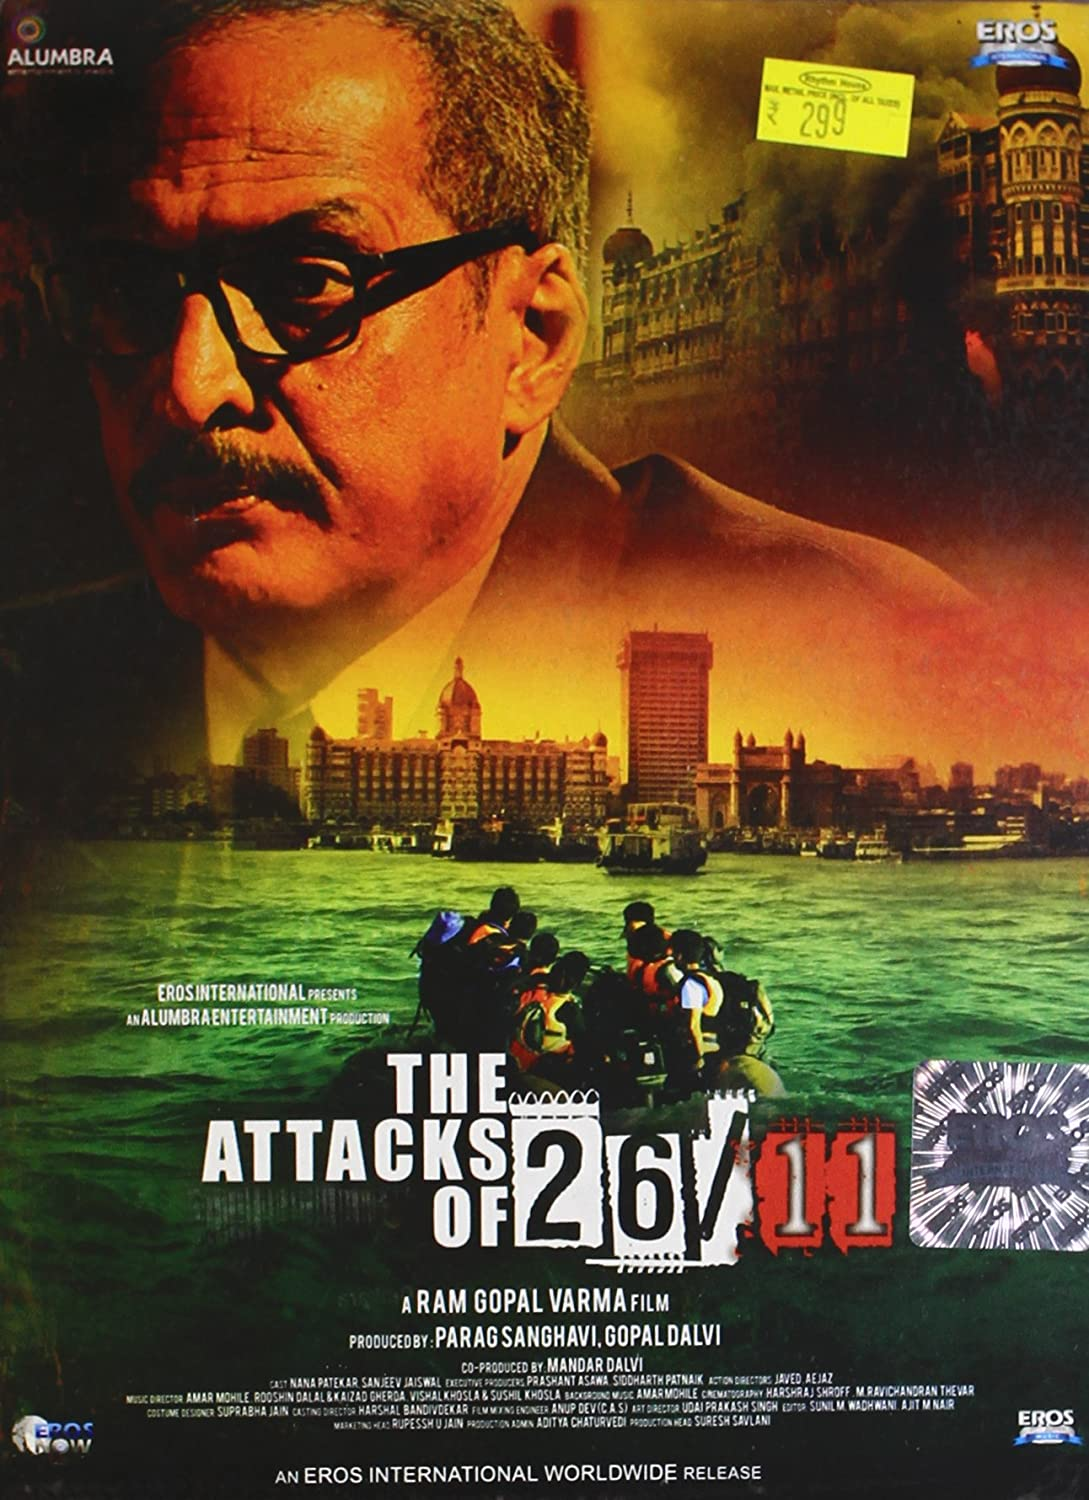 Amazonin Buy The Attacks Of 2611 Dvd Blu Ray Online At